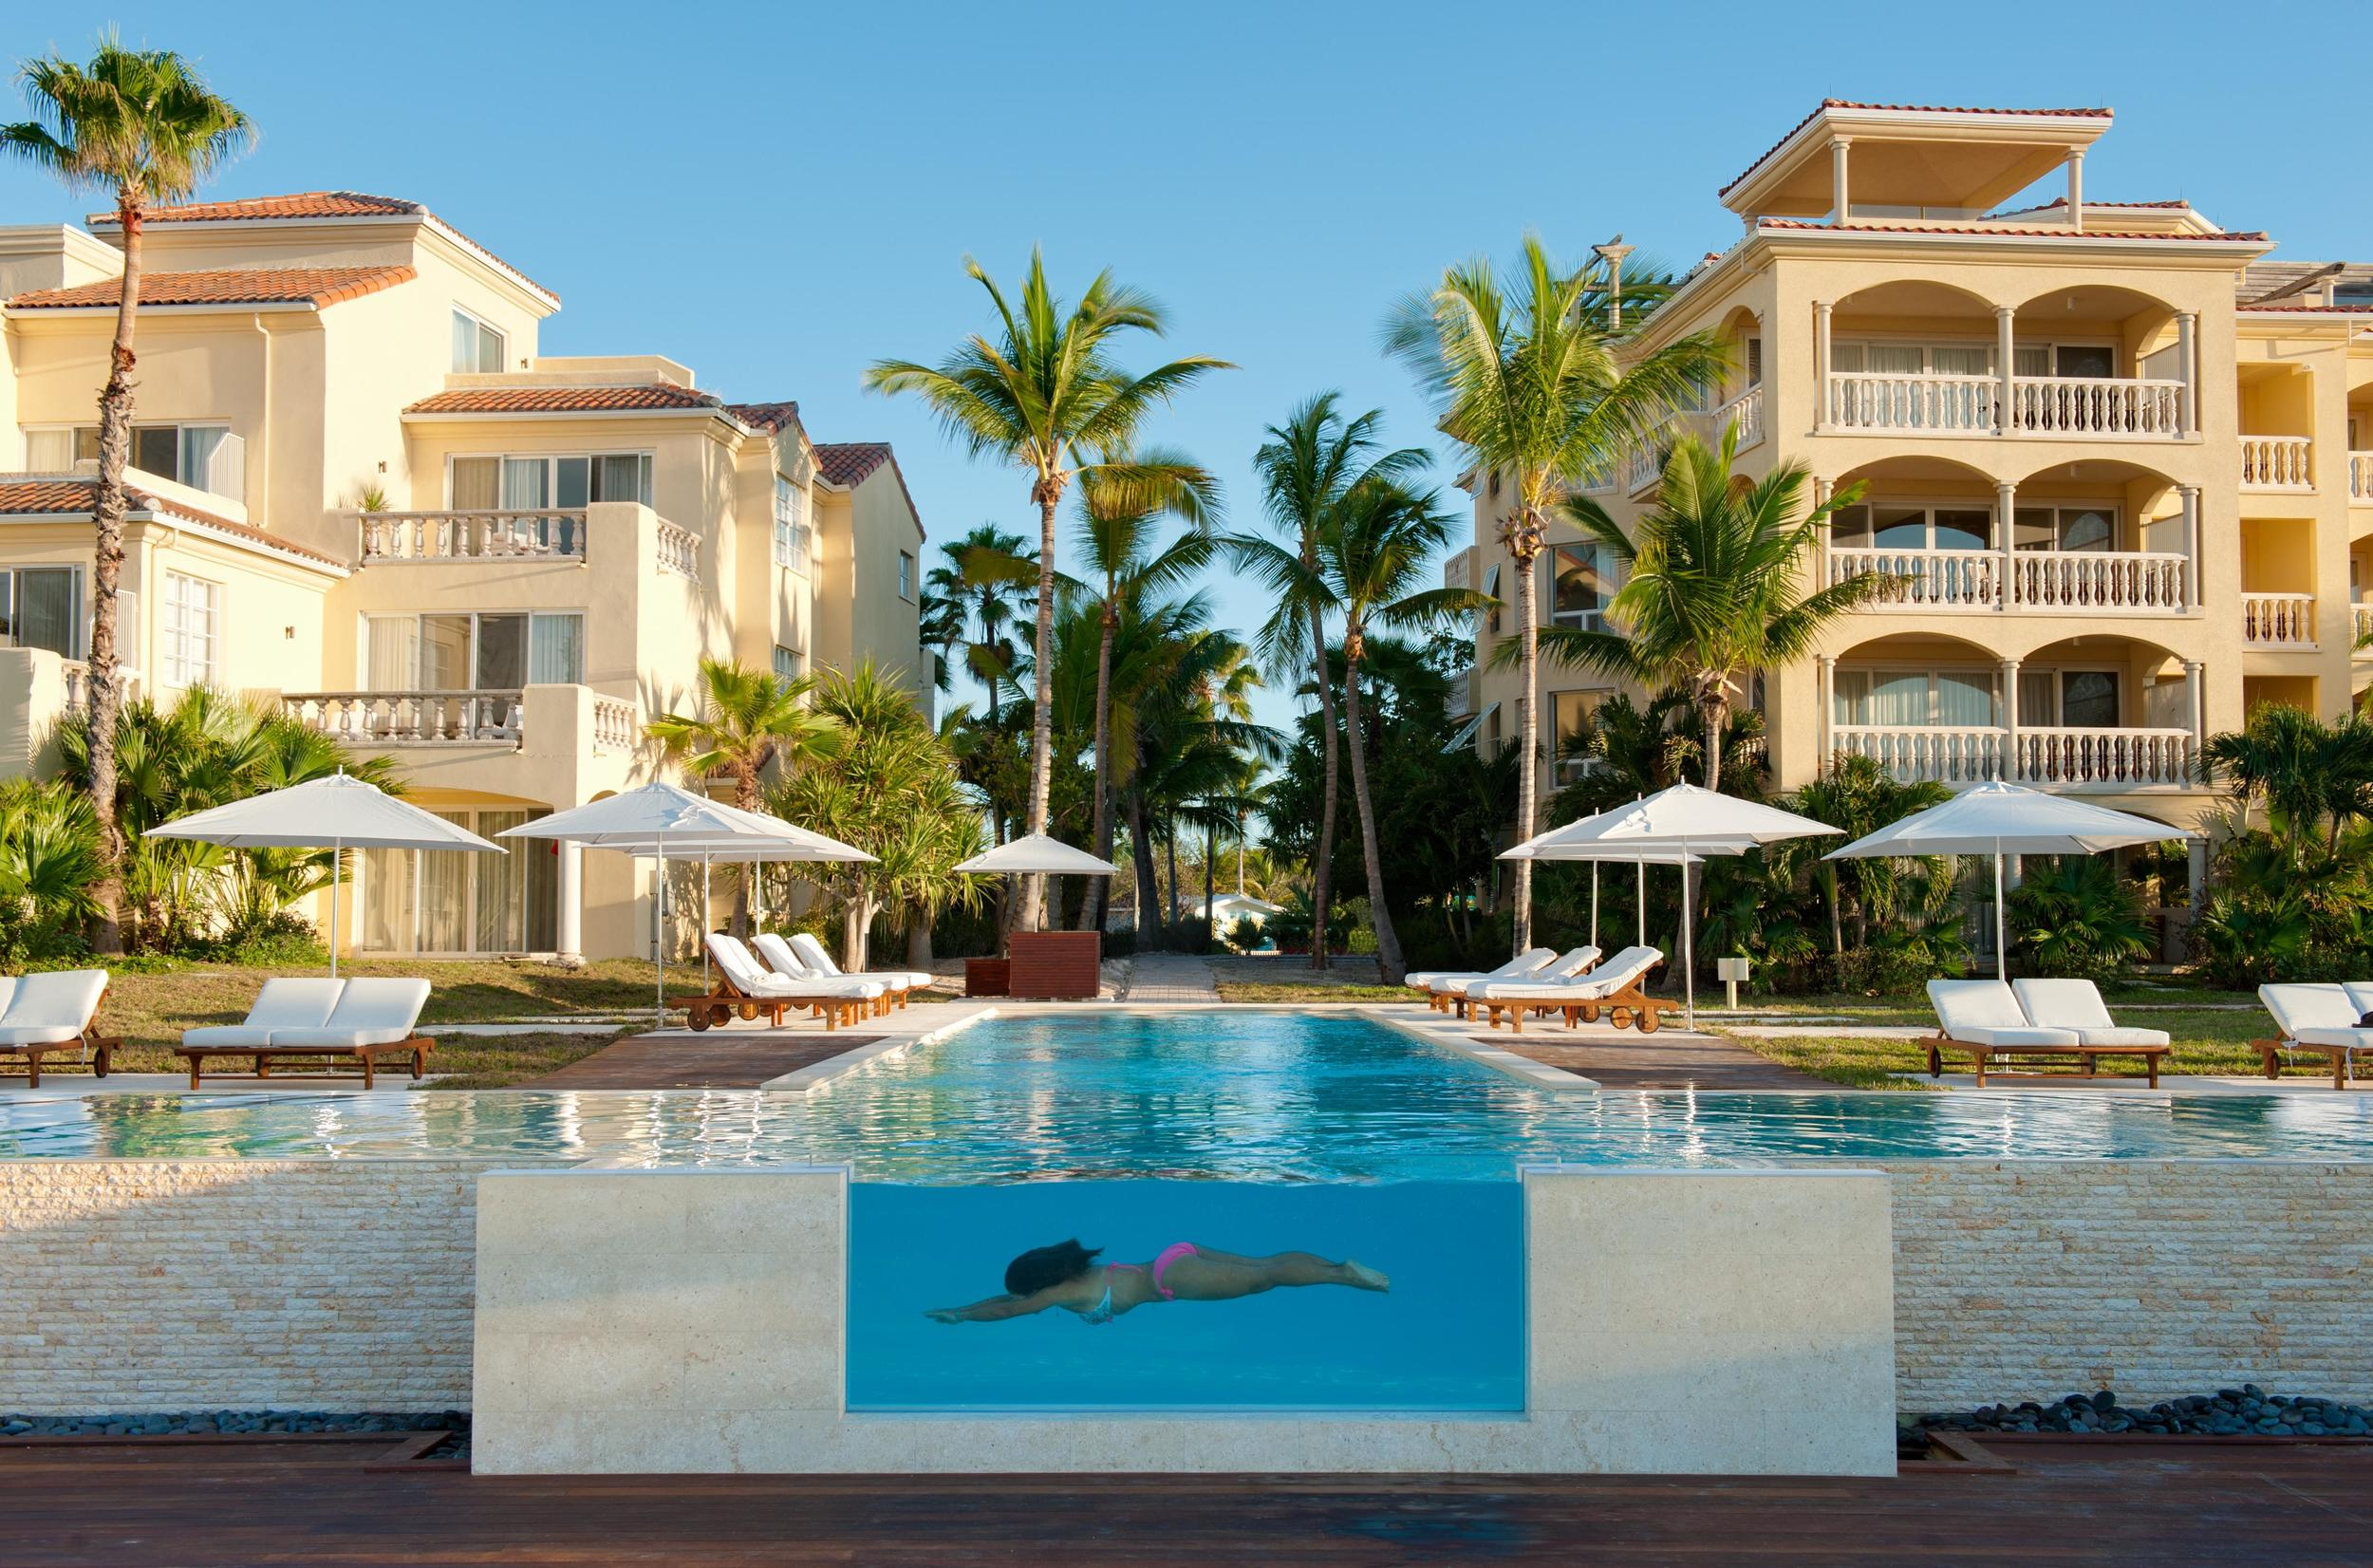 new-hotel-pool-1-hi-res.jpg